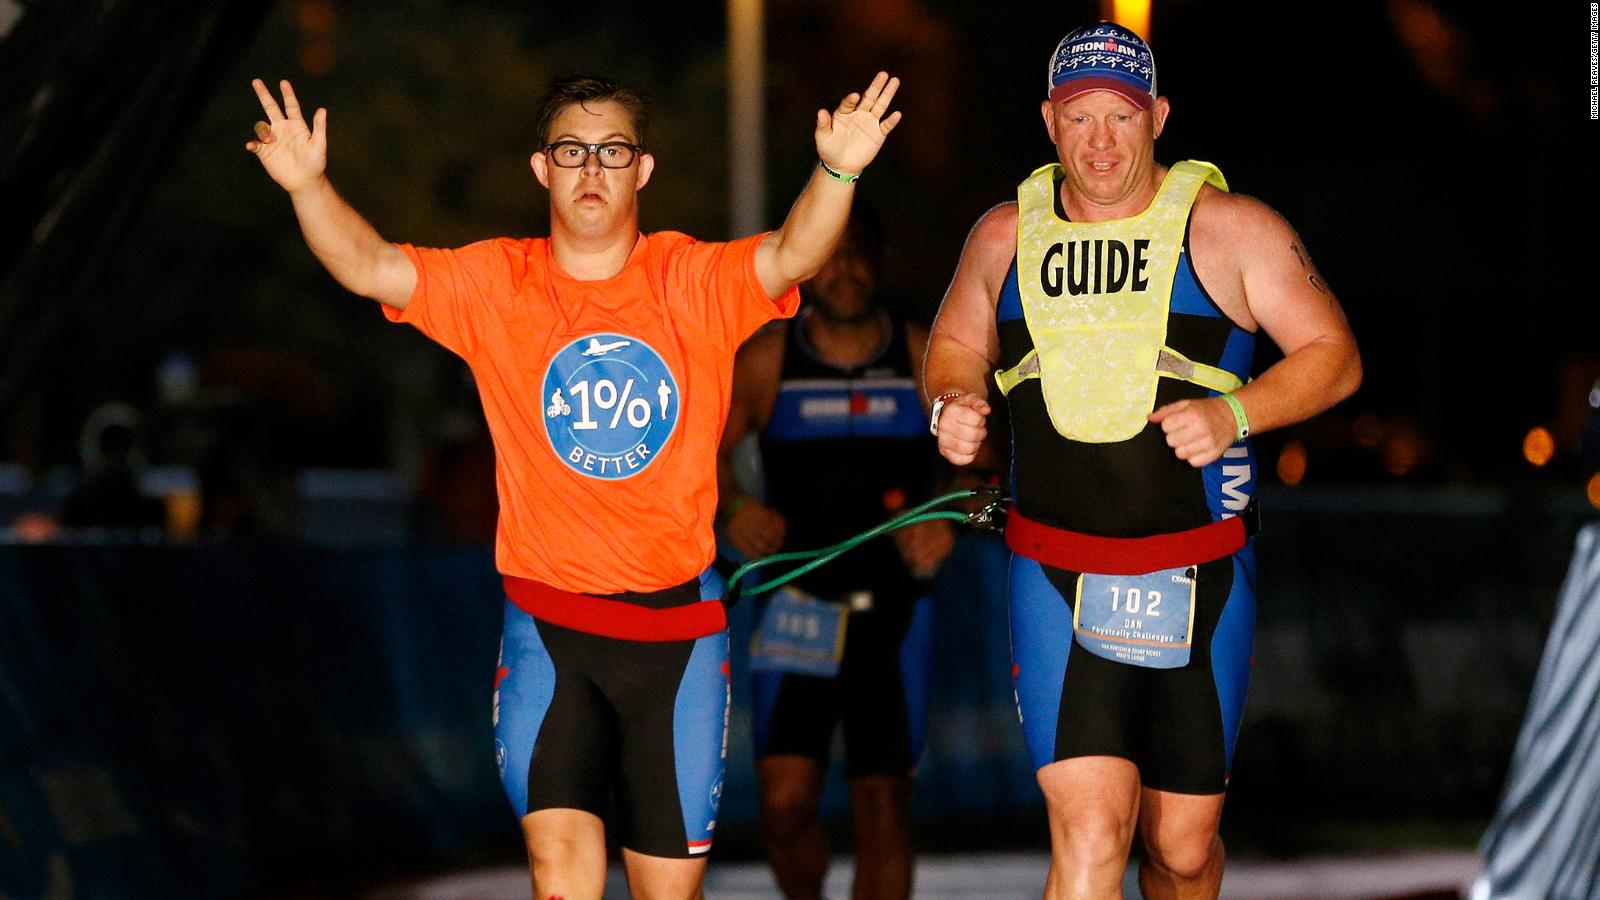 Athlete with Down syndrome makes history in Ironman triathlon - CNN Video